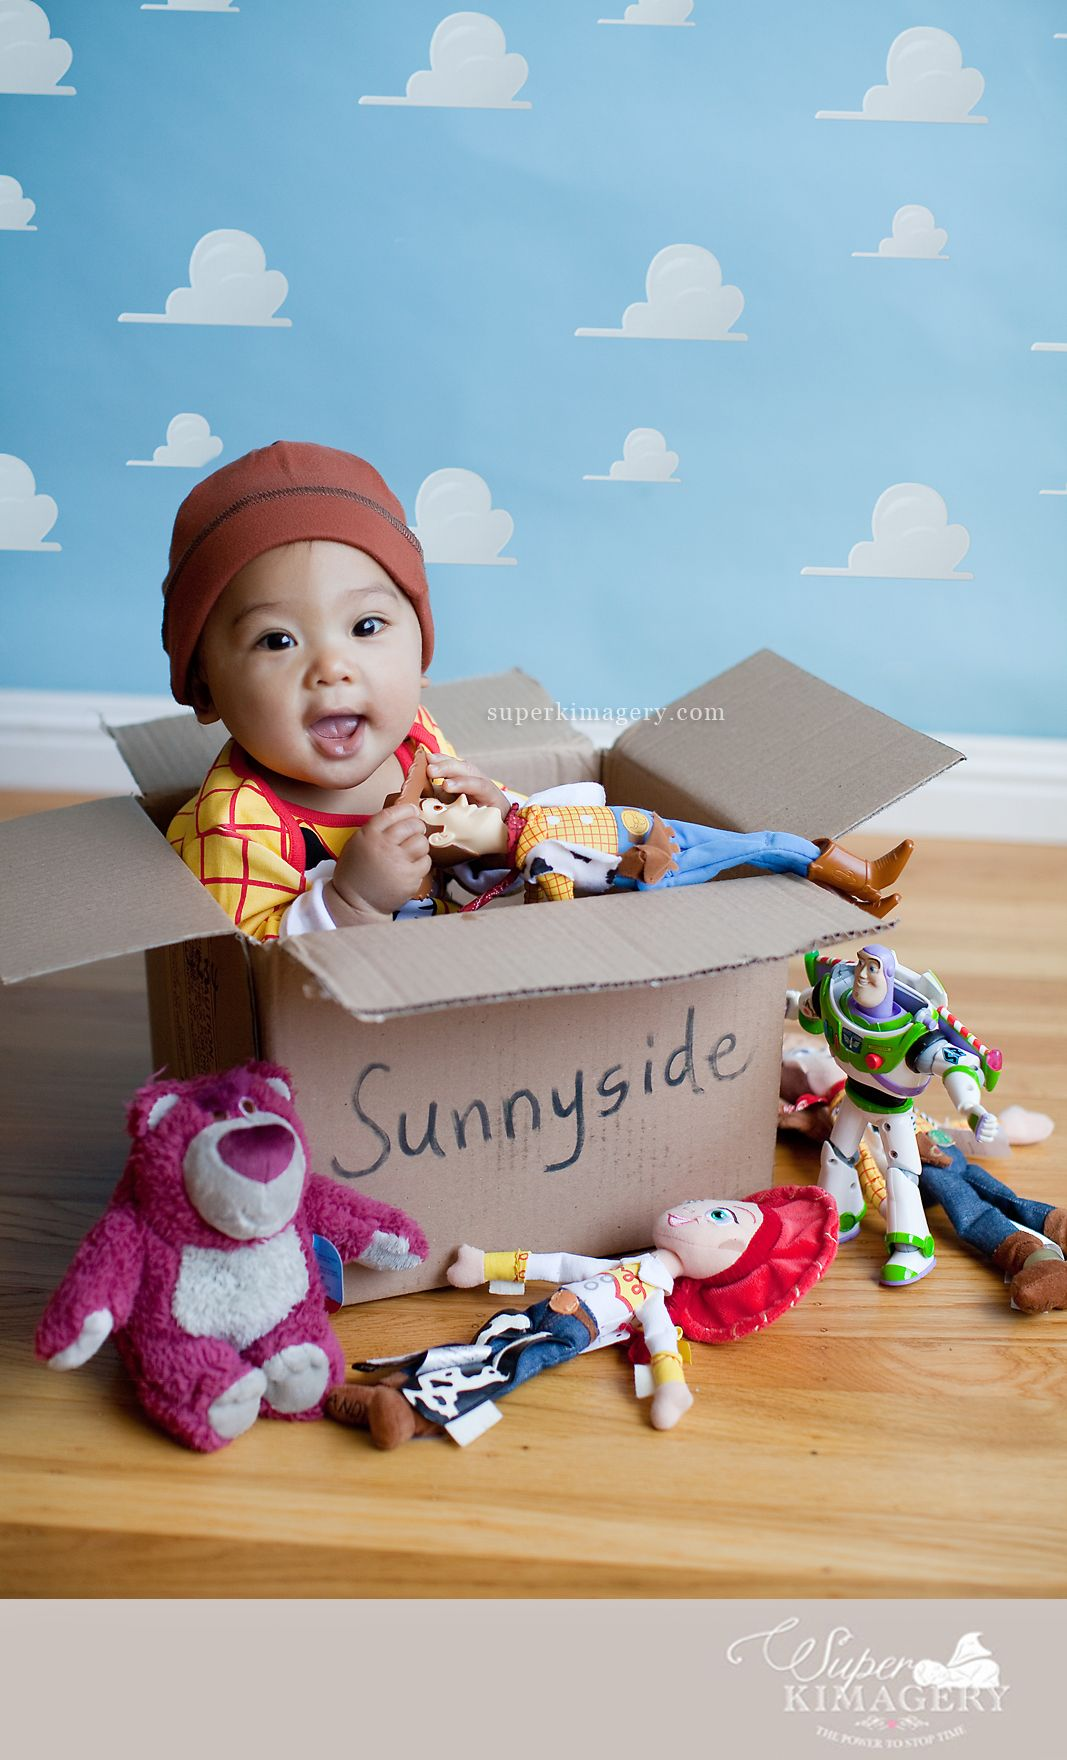 themed photo shoots for children   ... Pixar Toy Story Themed Photo Shoot   San Francisco Baby Photographer